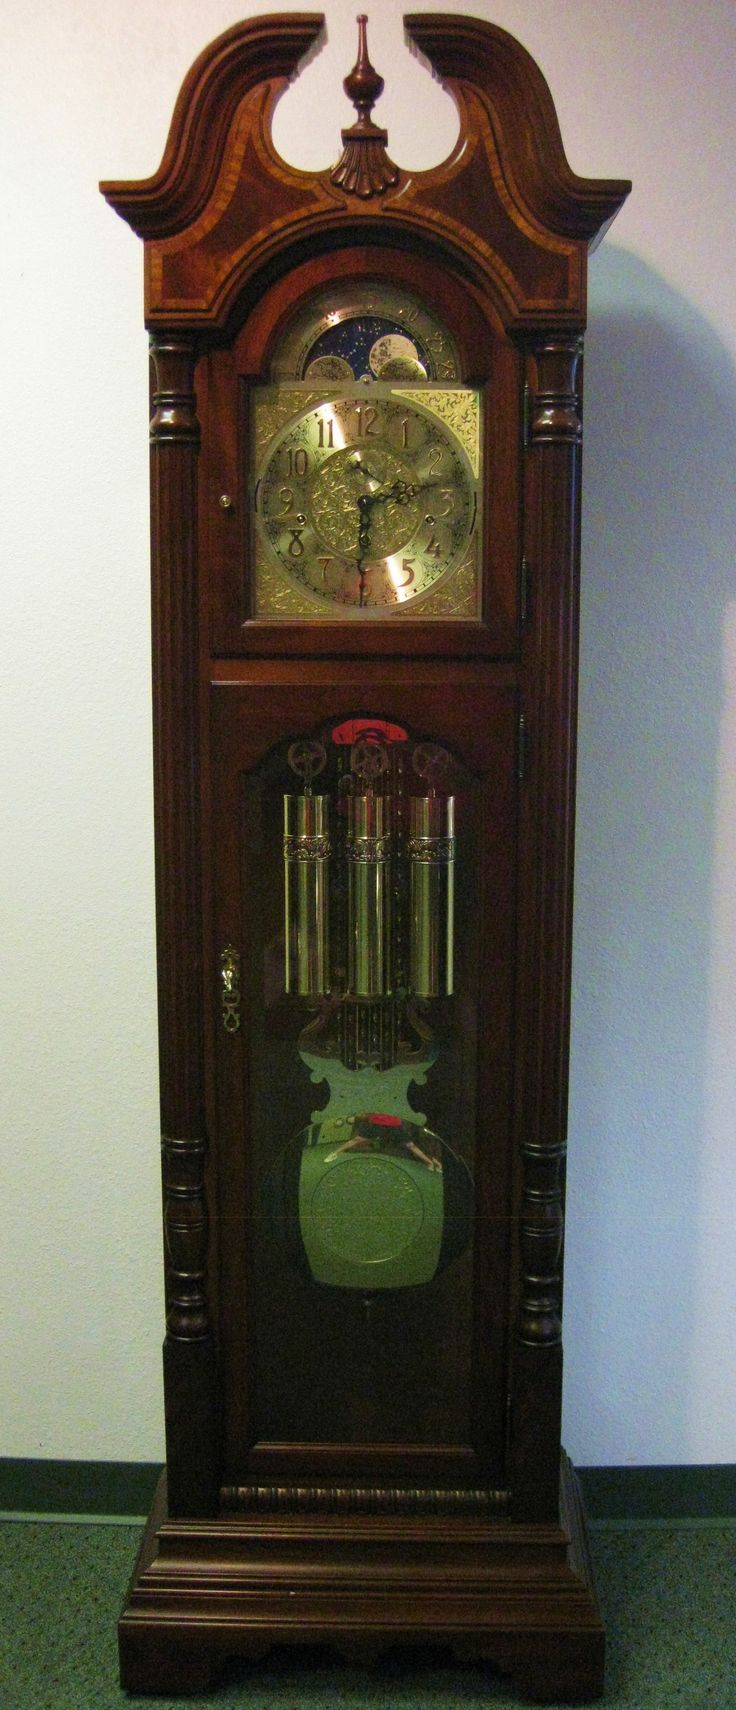 Sligh triplechime grandfather clock grandfather clocks grandfather clocks wall mantel antique clocks clock repair by mcguires clocks amipublicfo Images